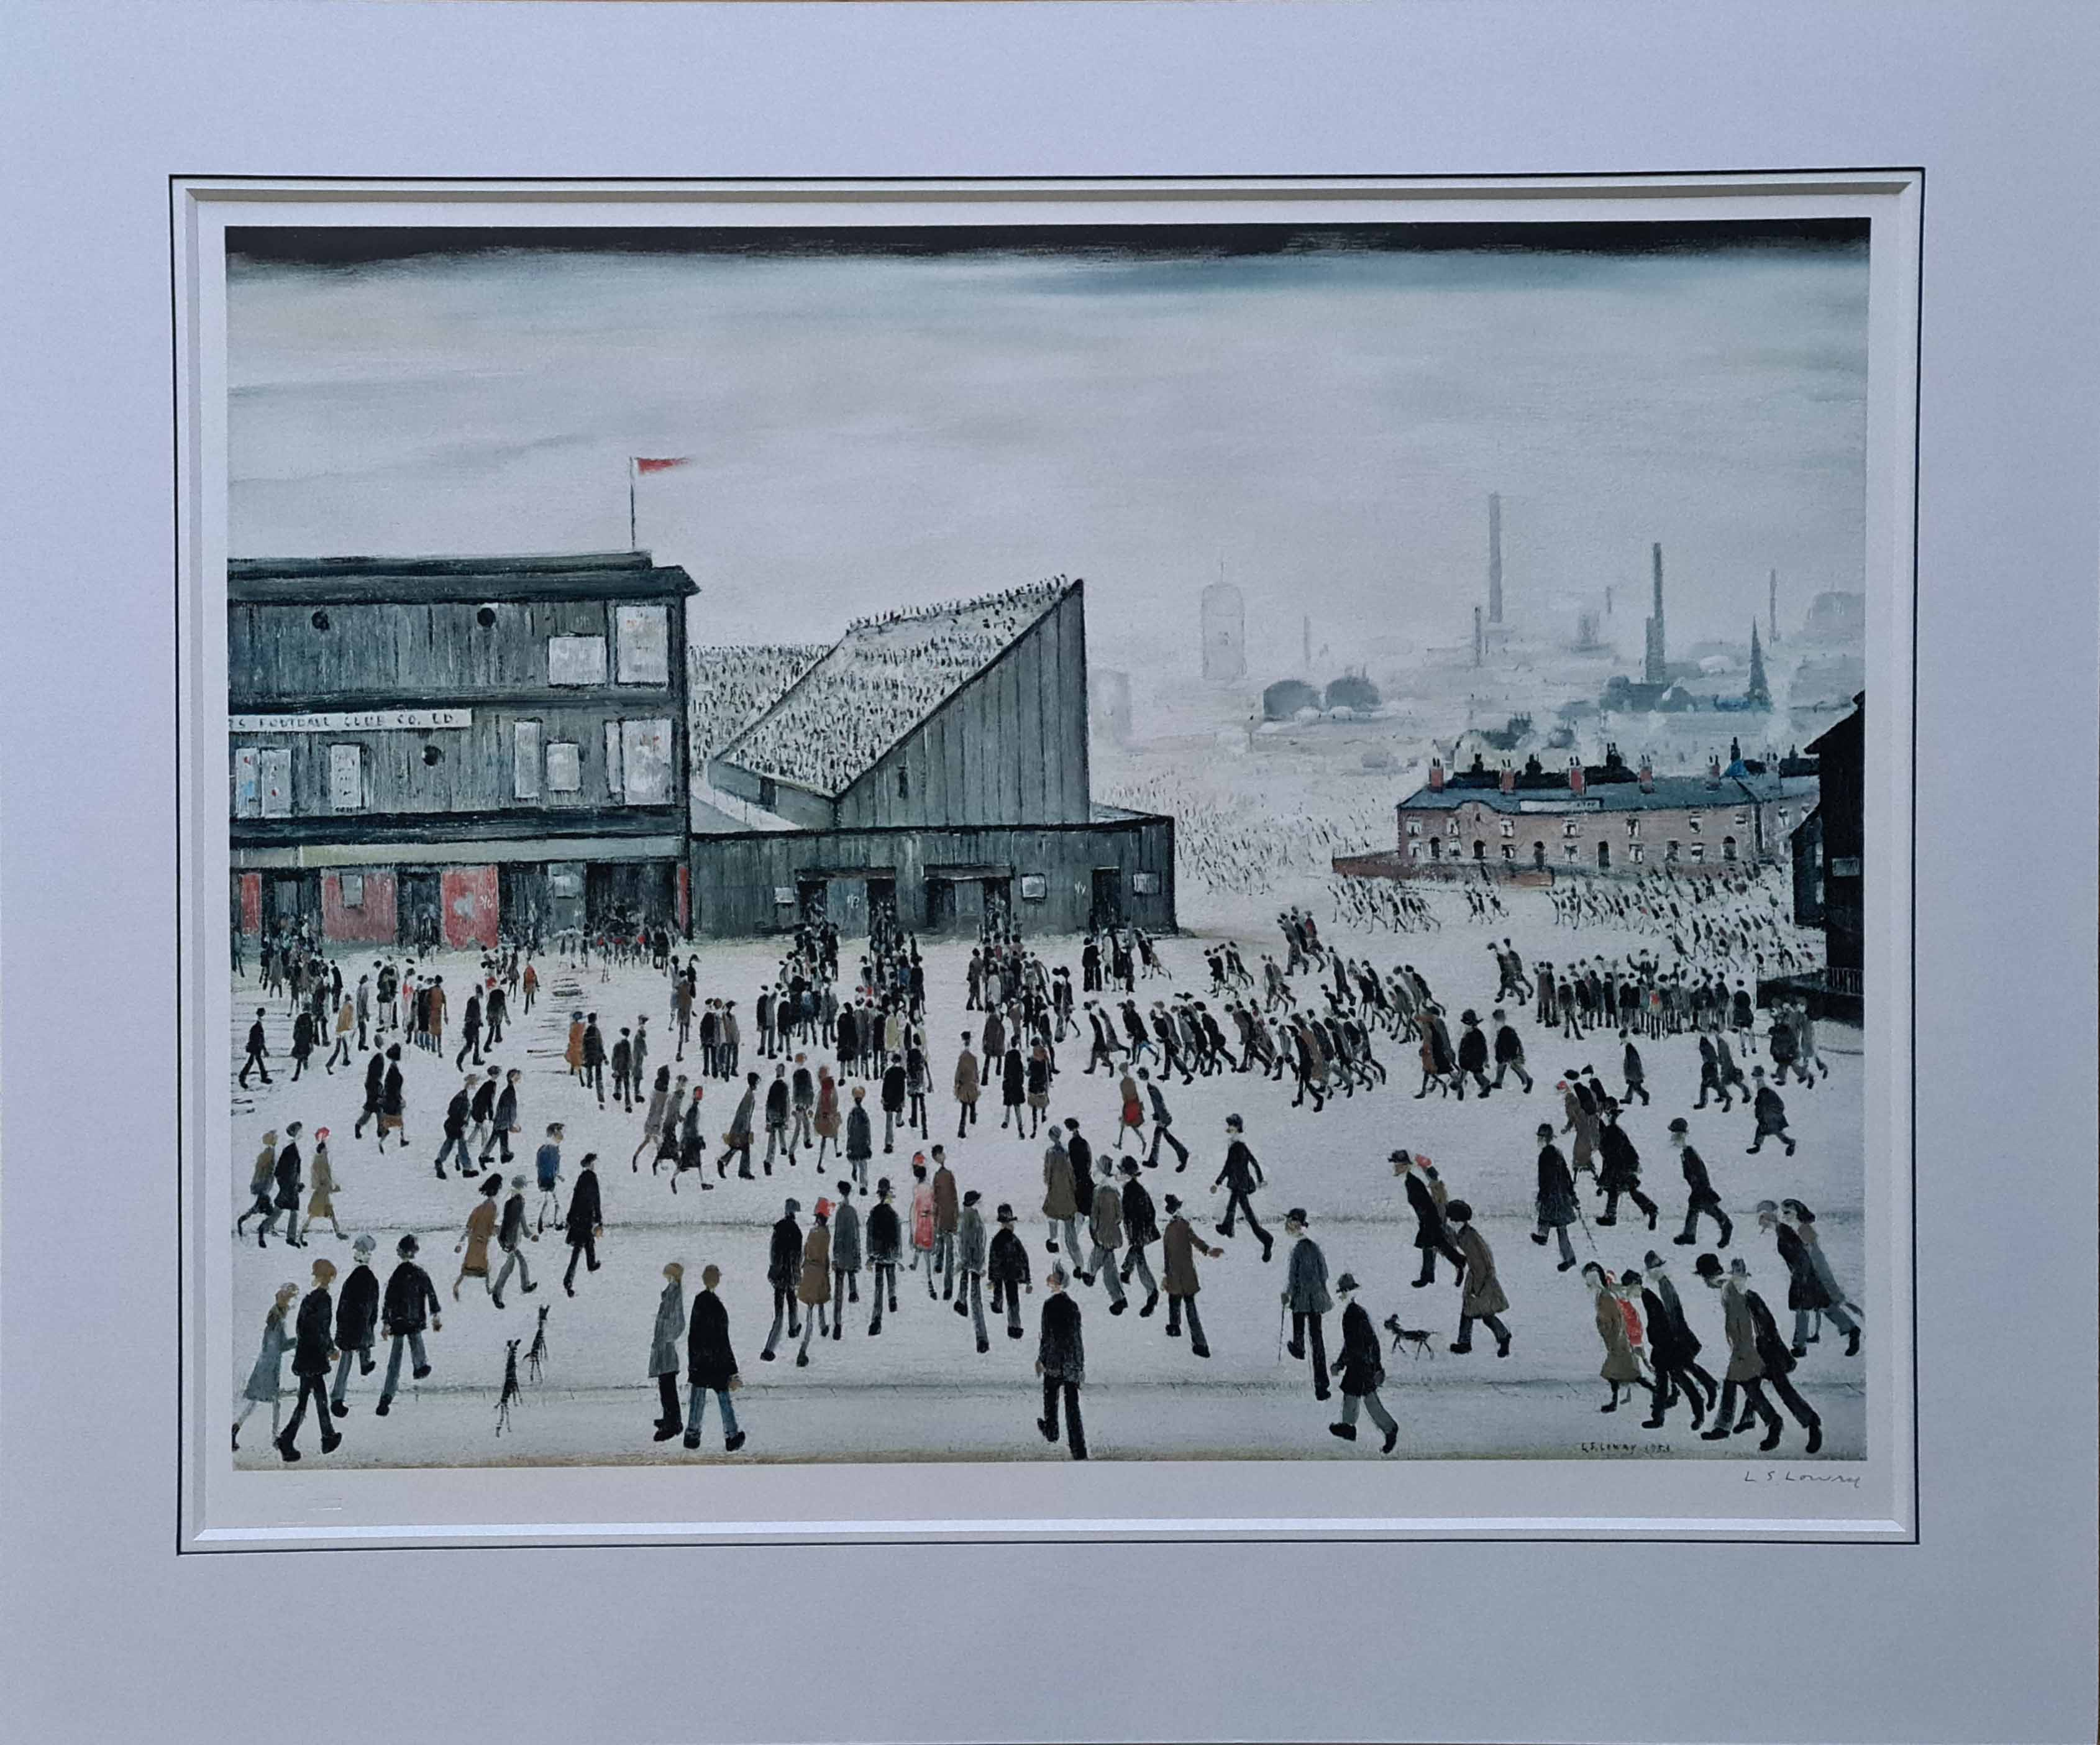 lowry, going to the match,6, signed print lslowry